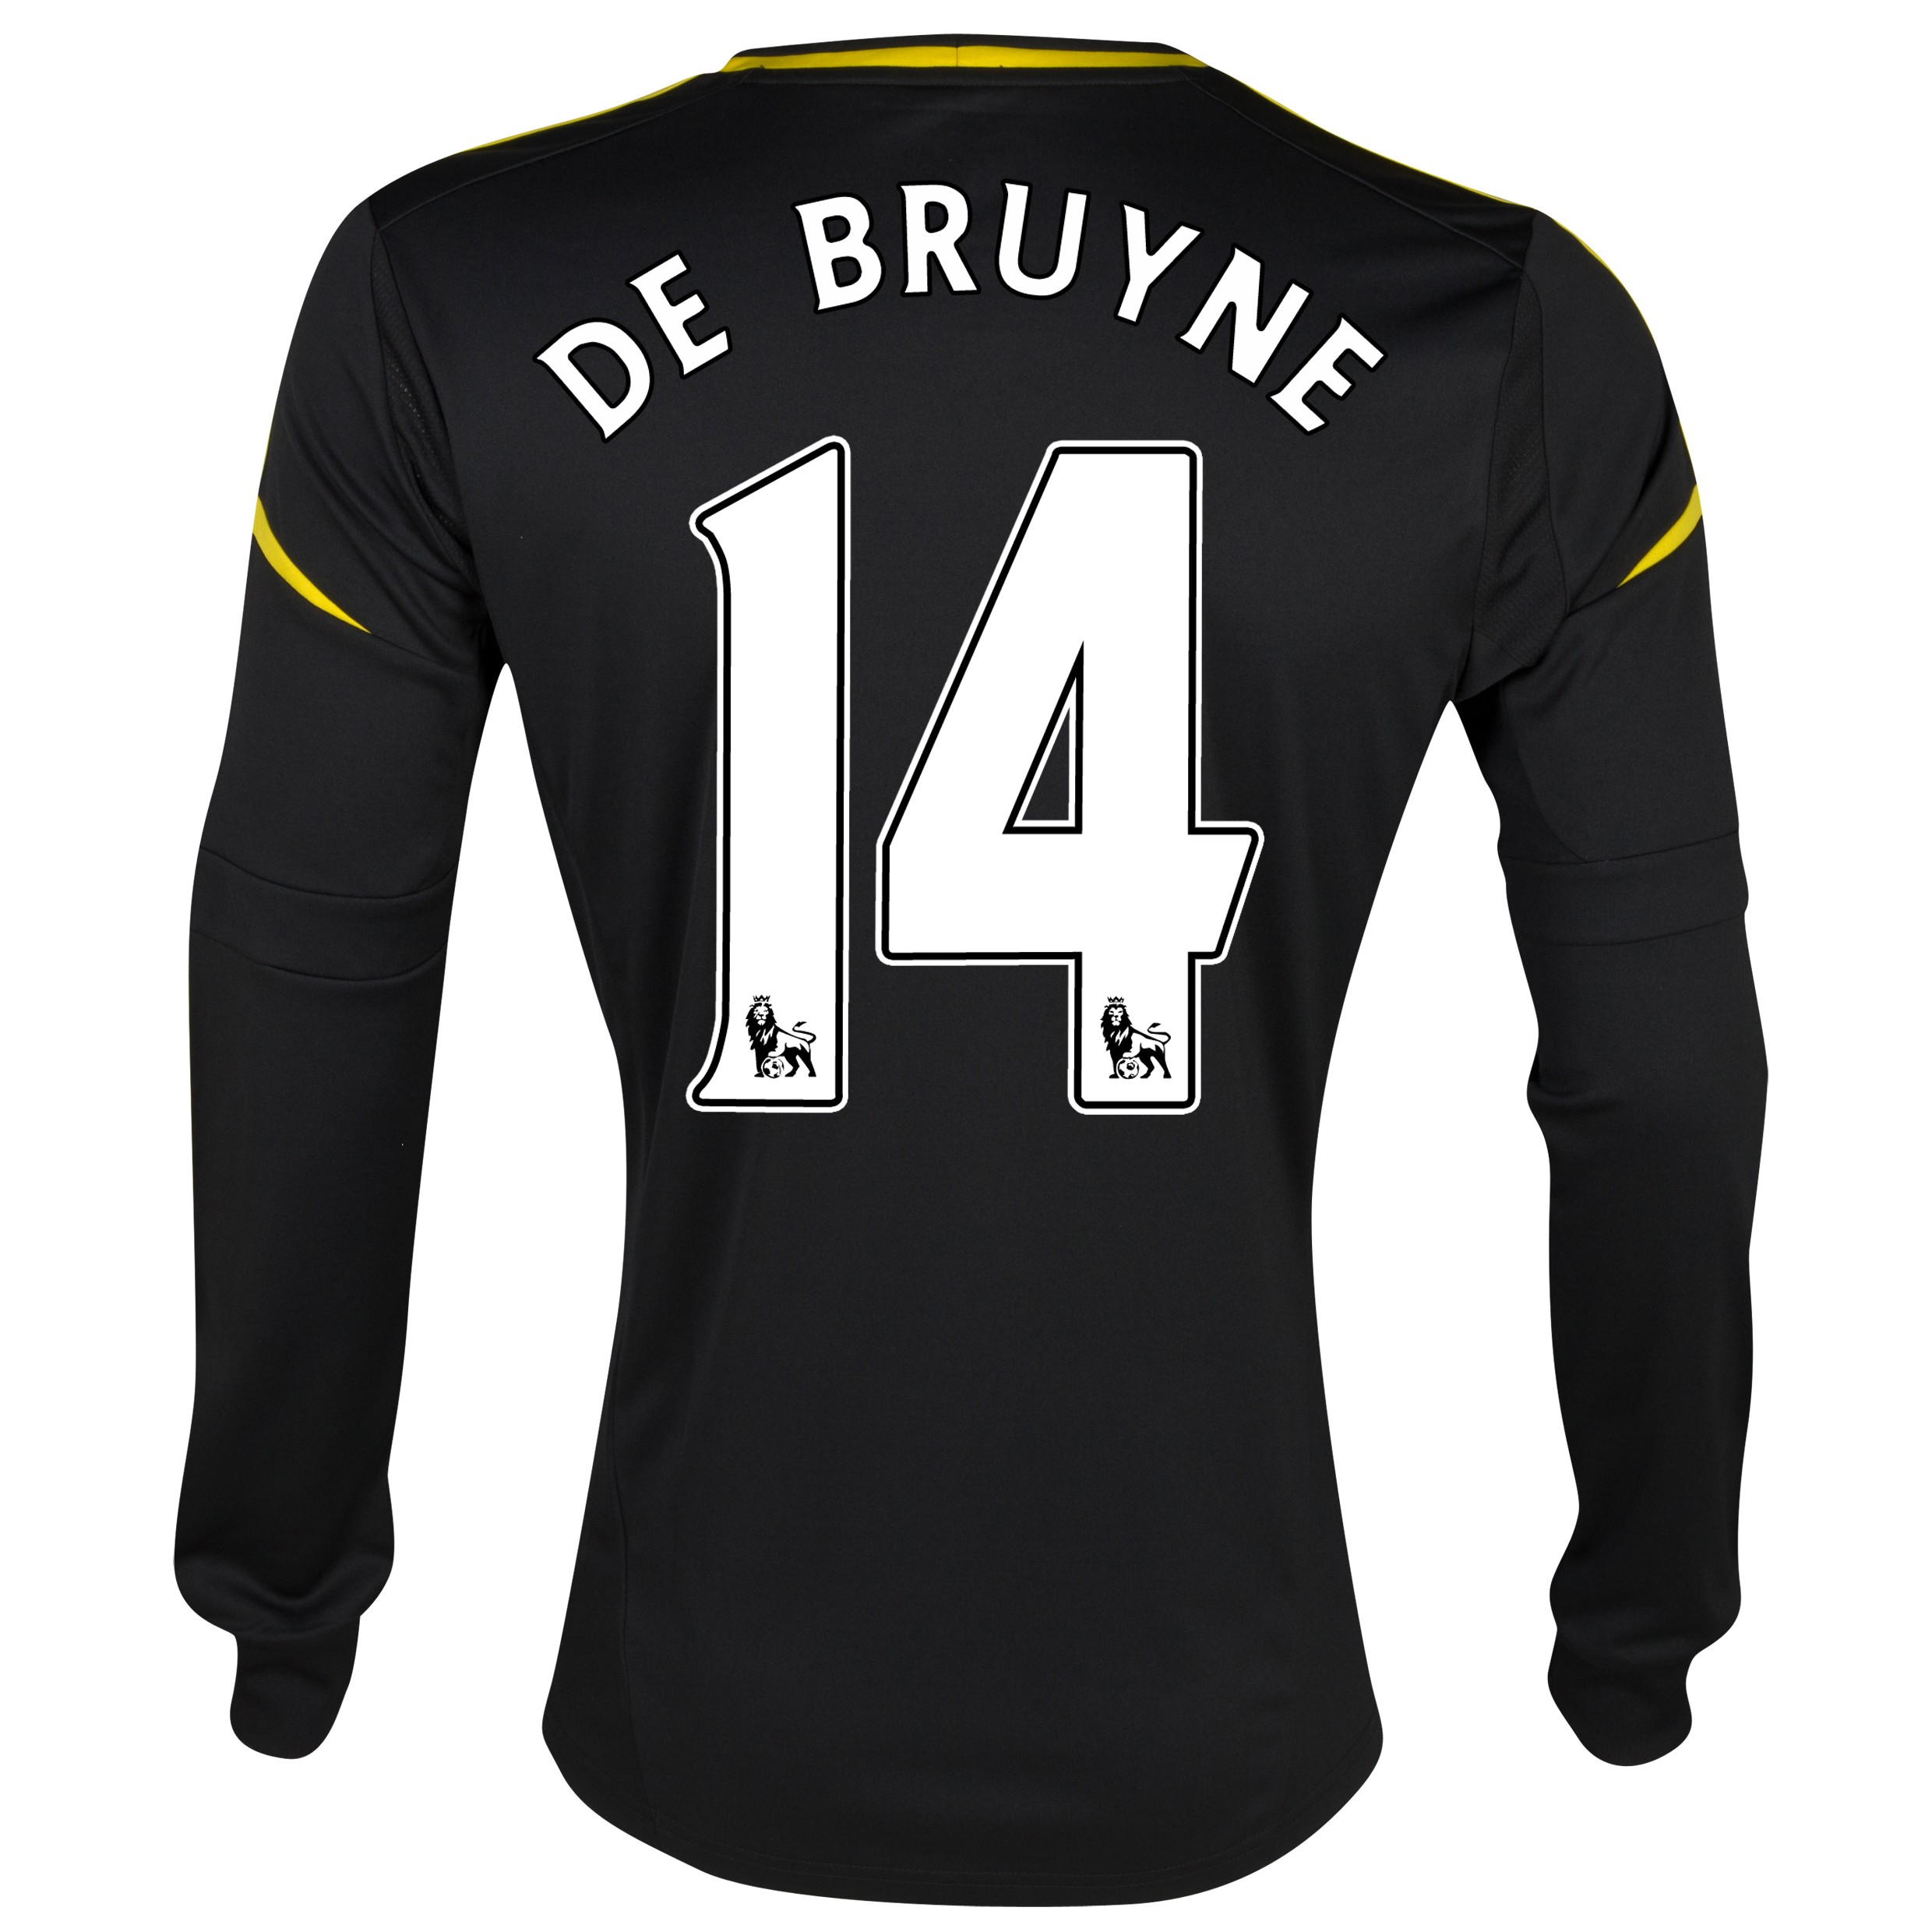 Chelsea Third Shirt 2012/13 - Long Sleeved with De Bruyne 14 printing